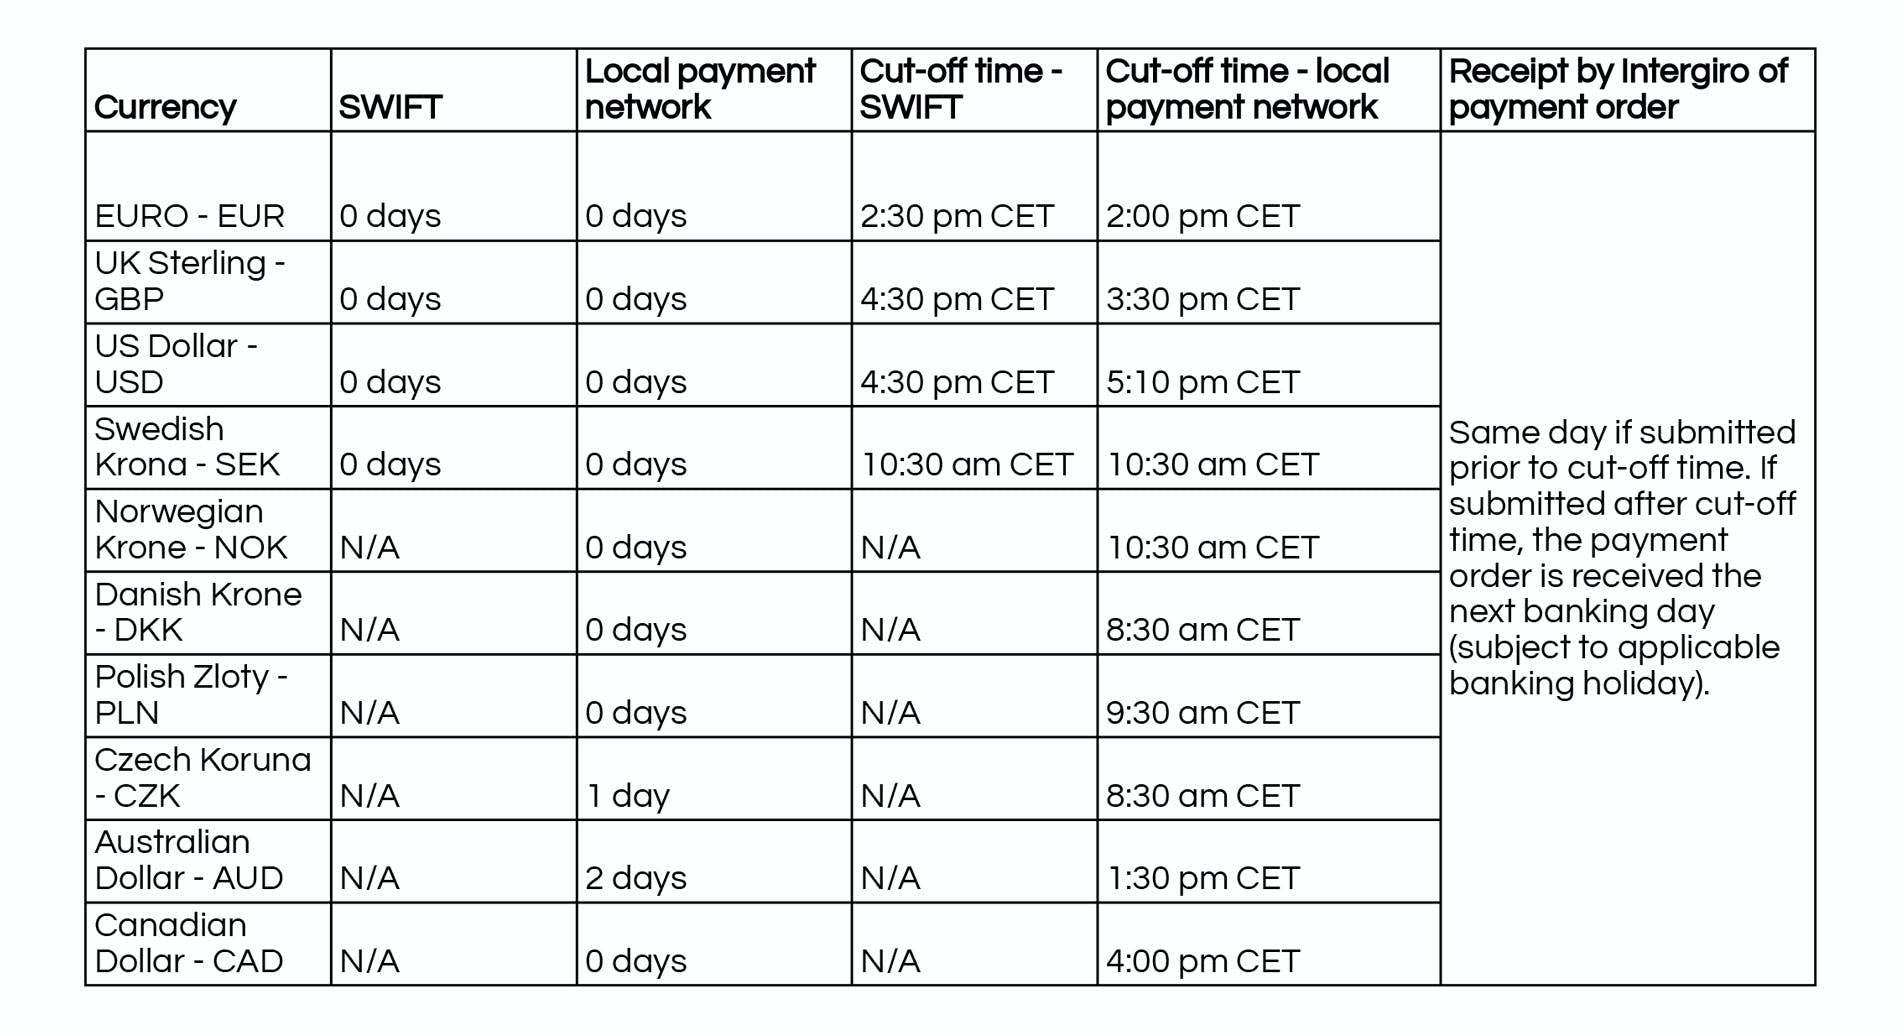 Cut-off times for payouts (other than SEPA network)